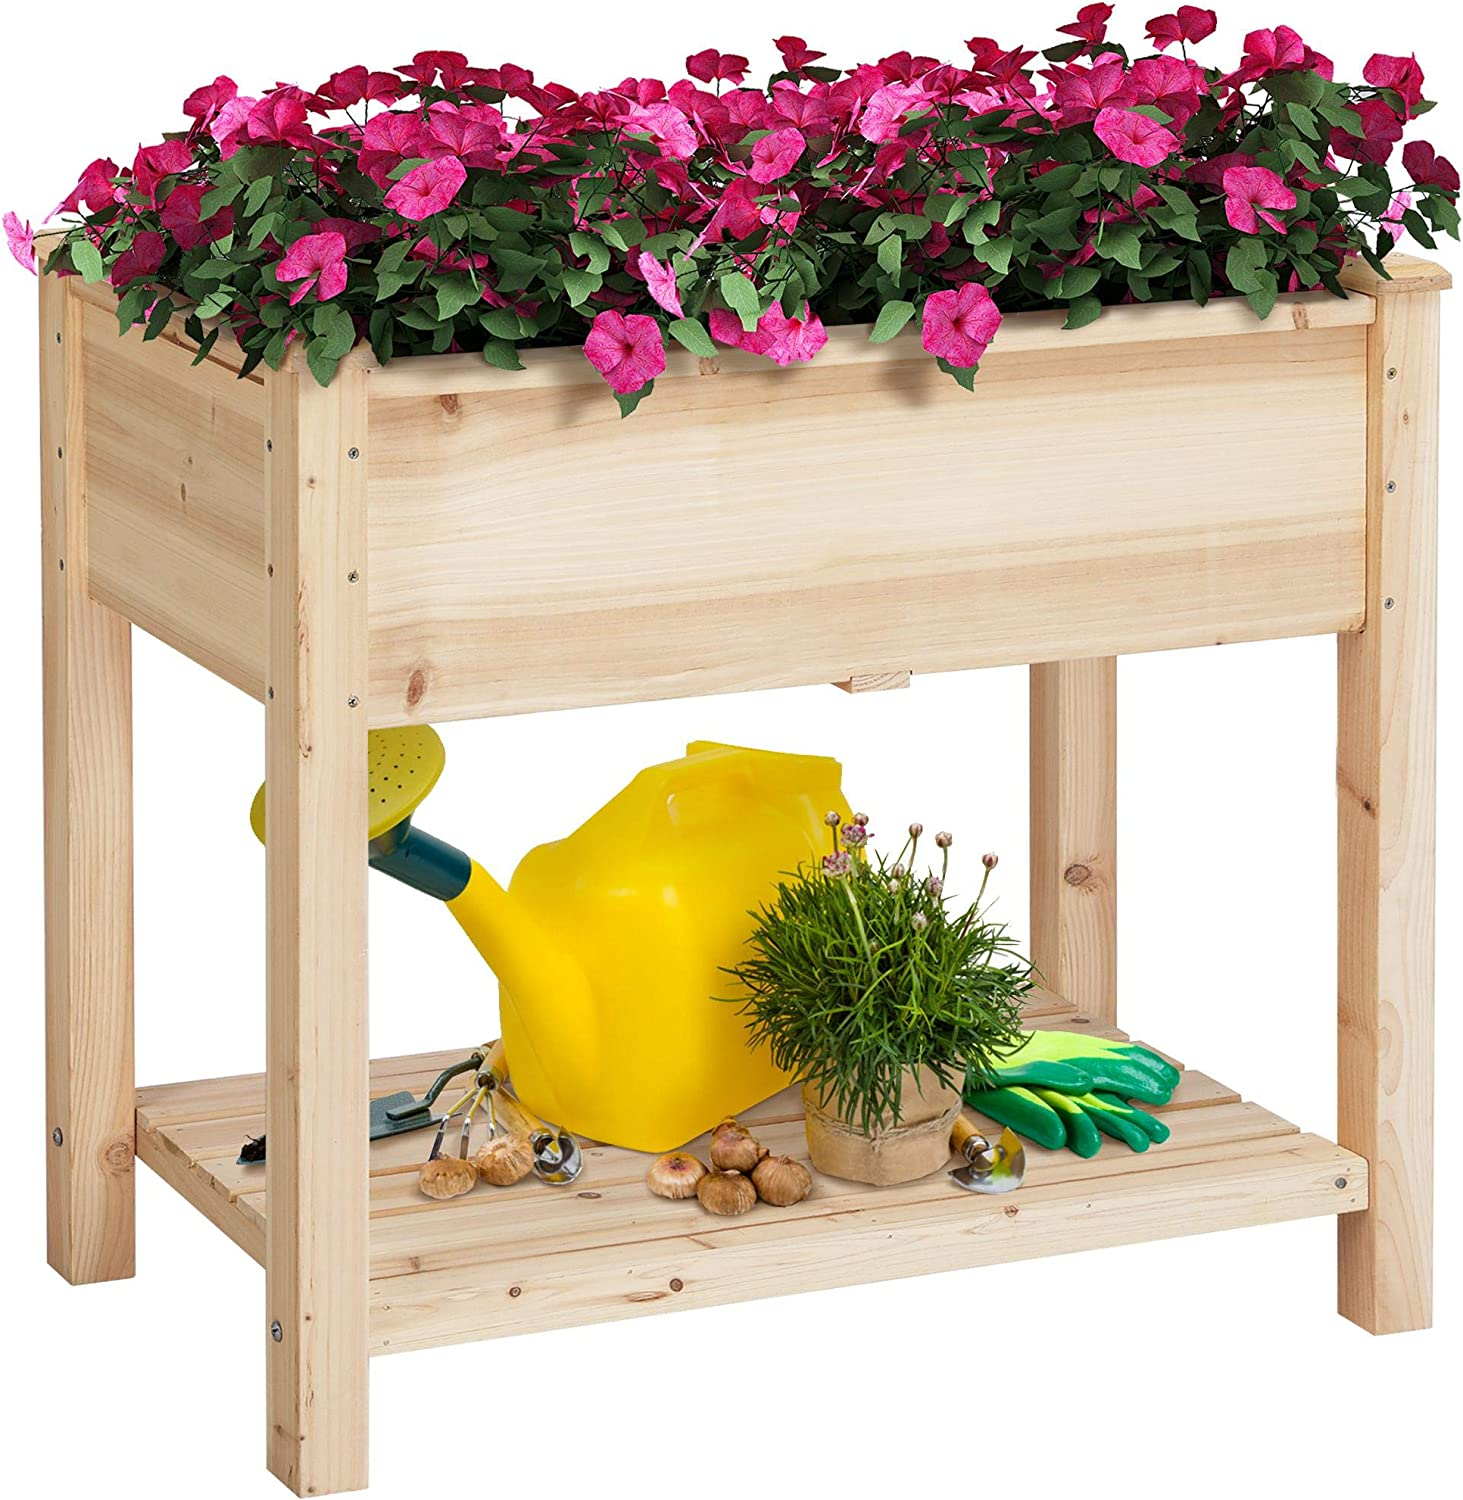 Topeakmart Solid Wooden Raised Vegetable Garden Bed Elevated Planter Kit Grow Gardening Box with Legs Storage Shelf 8 inches Depth of Box Load Capacity 220lbs